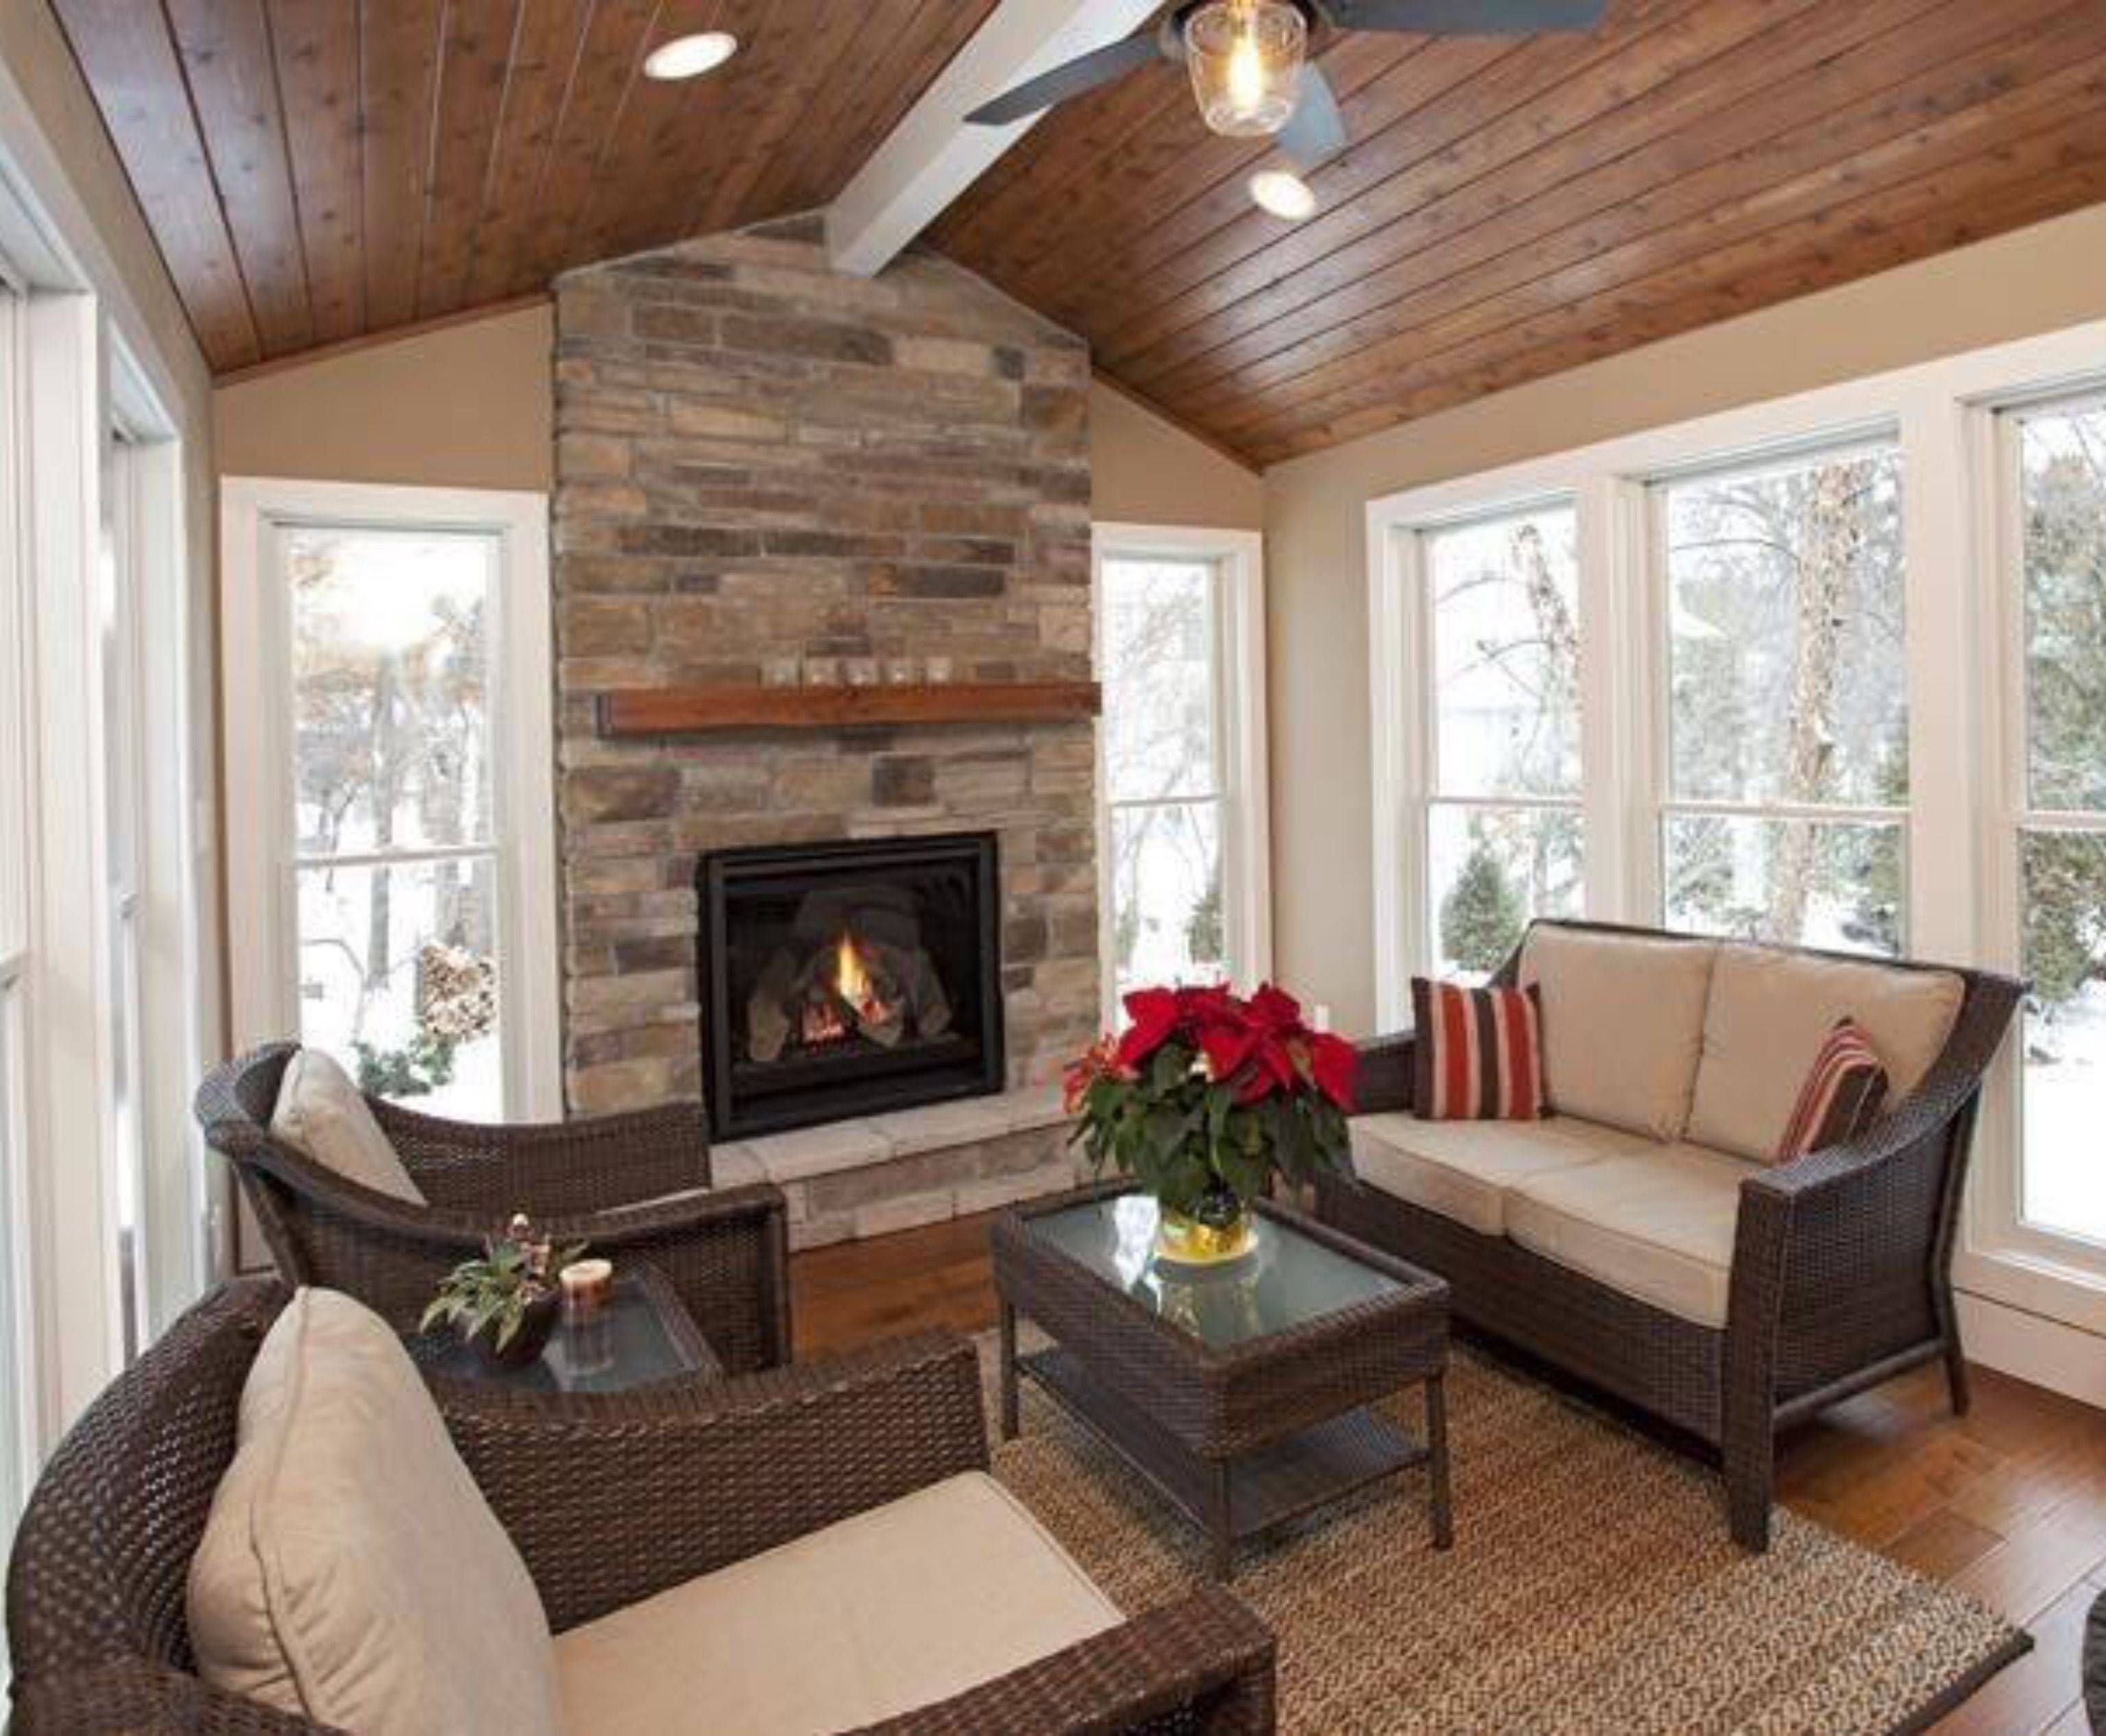 Sunroom With Fireplace Designs Small Fireplace House With Porch